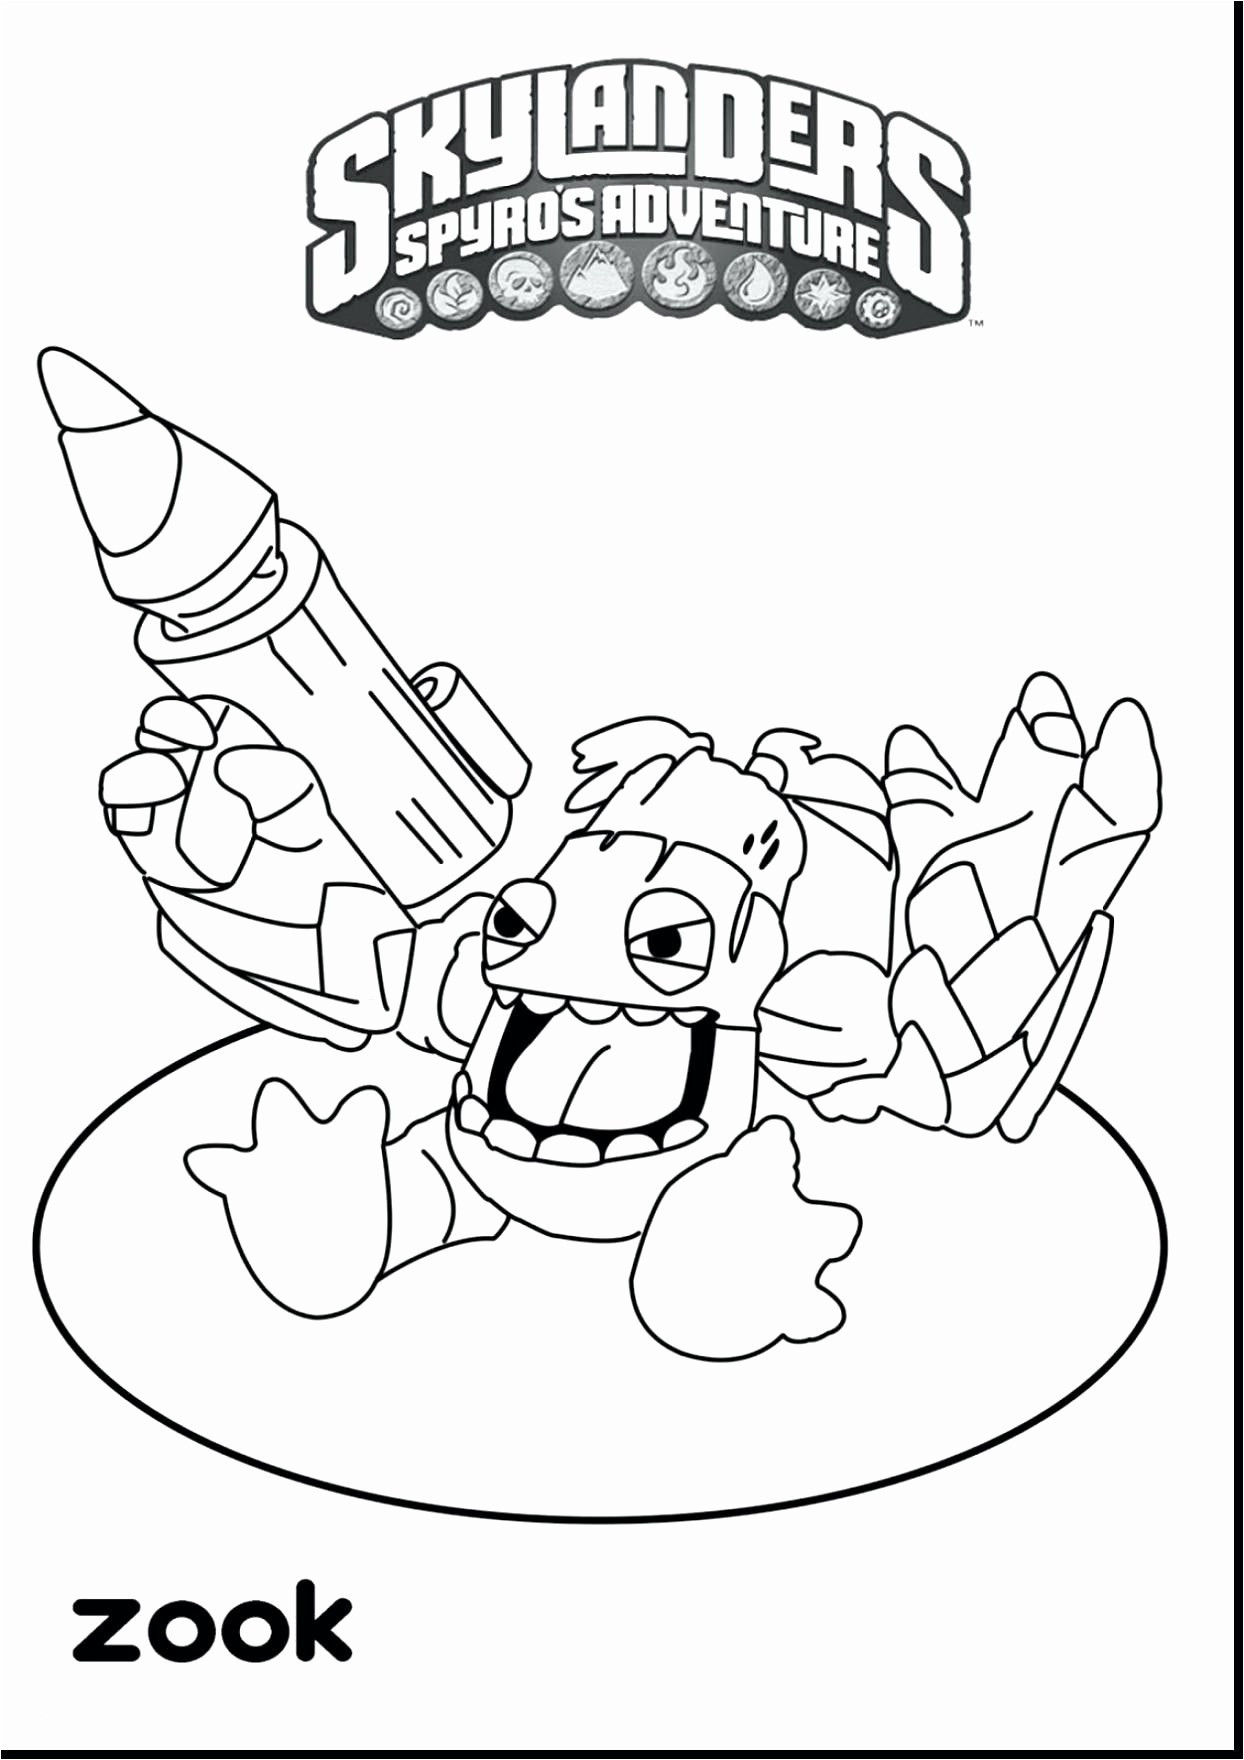 Bugs Bunny Coloring Pages Coloring Pages Lovely Bugs Bunny Coloring Pages Oldmint Info